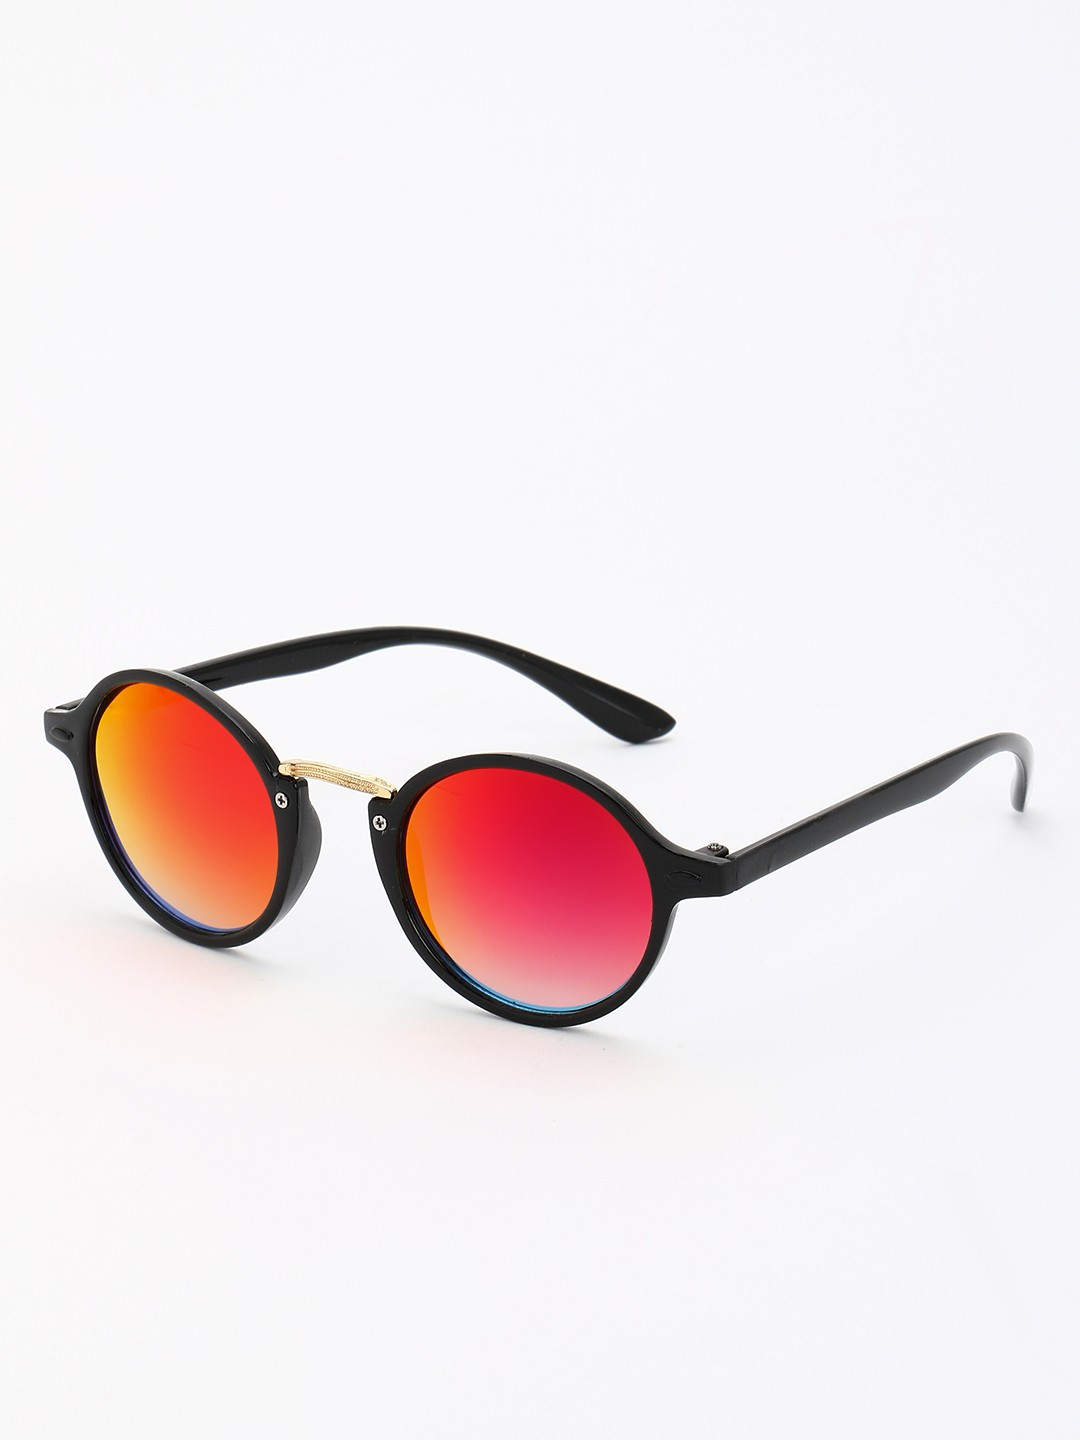 KOOVS Red Reflective Lens Round Sunglasses 1